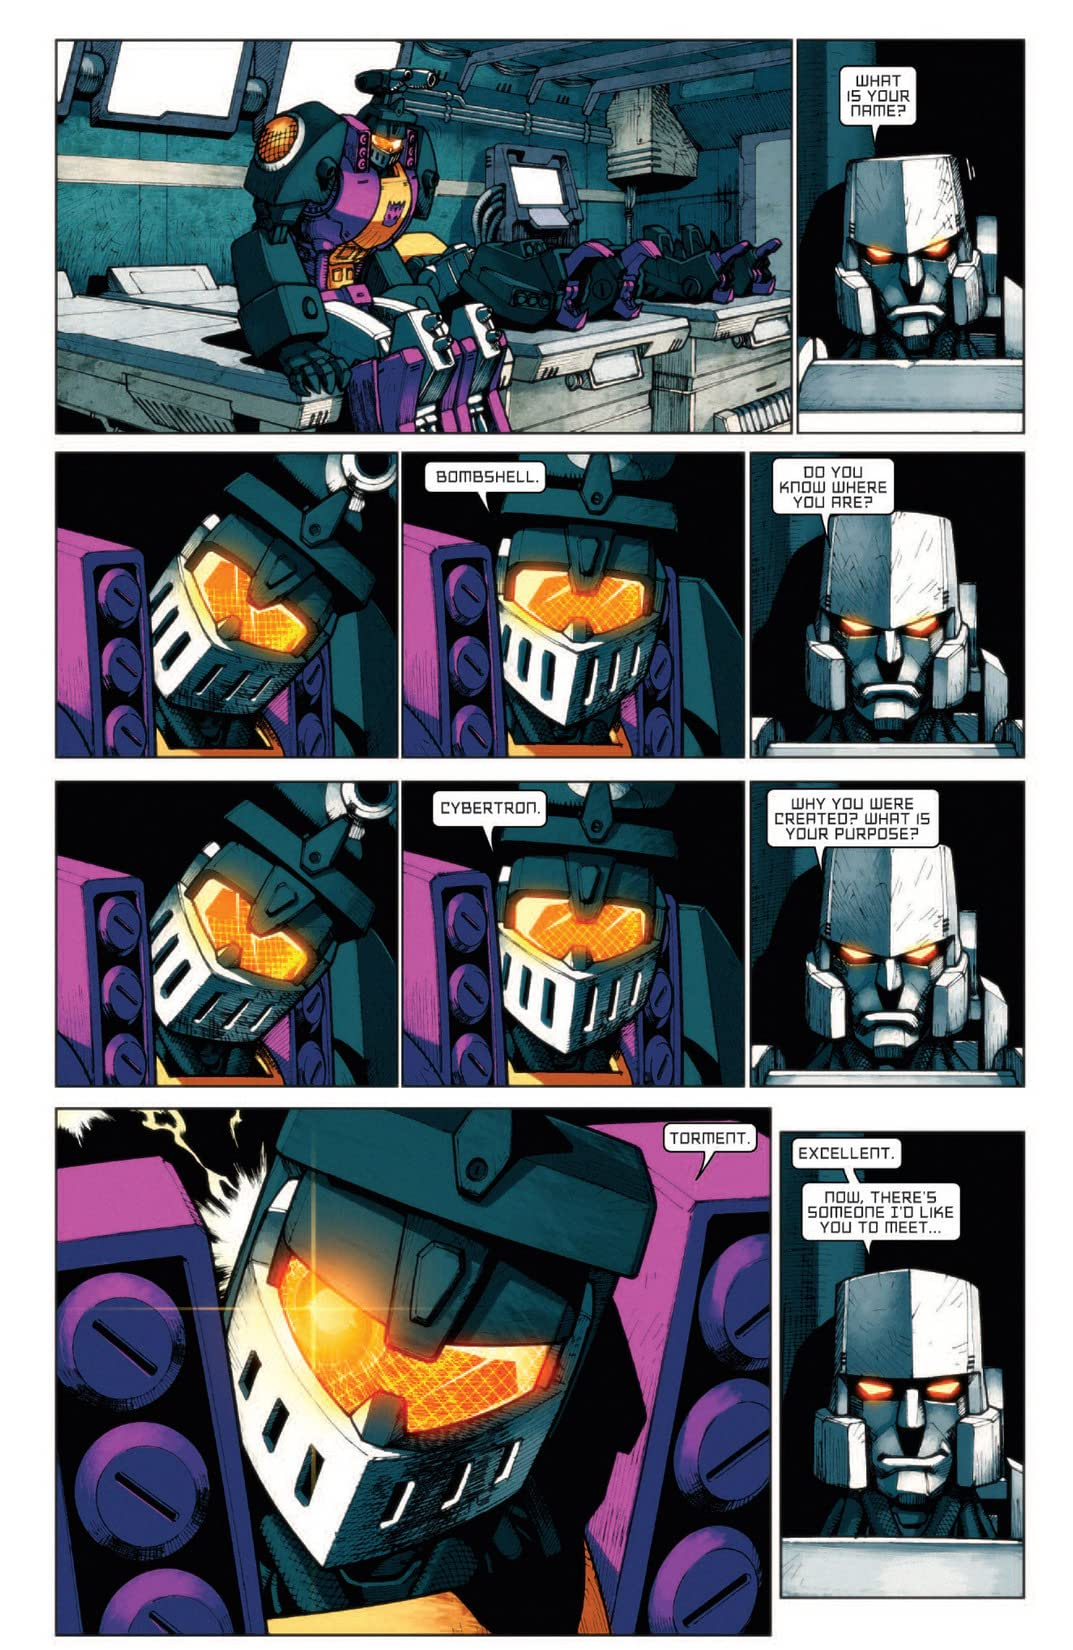 Transformers: All Hail Megatron Vol. 2